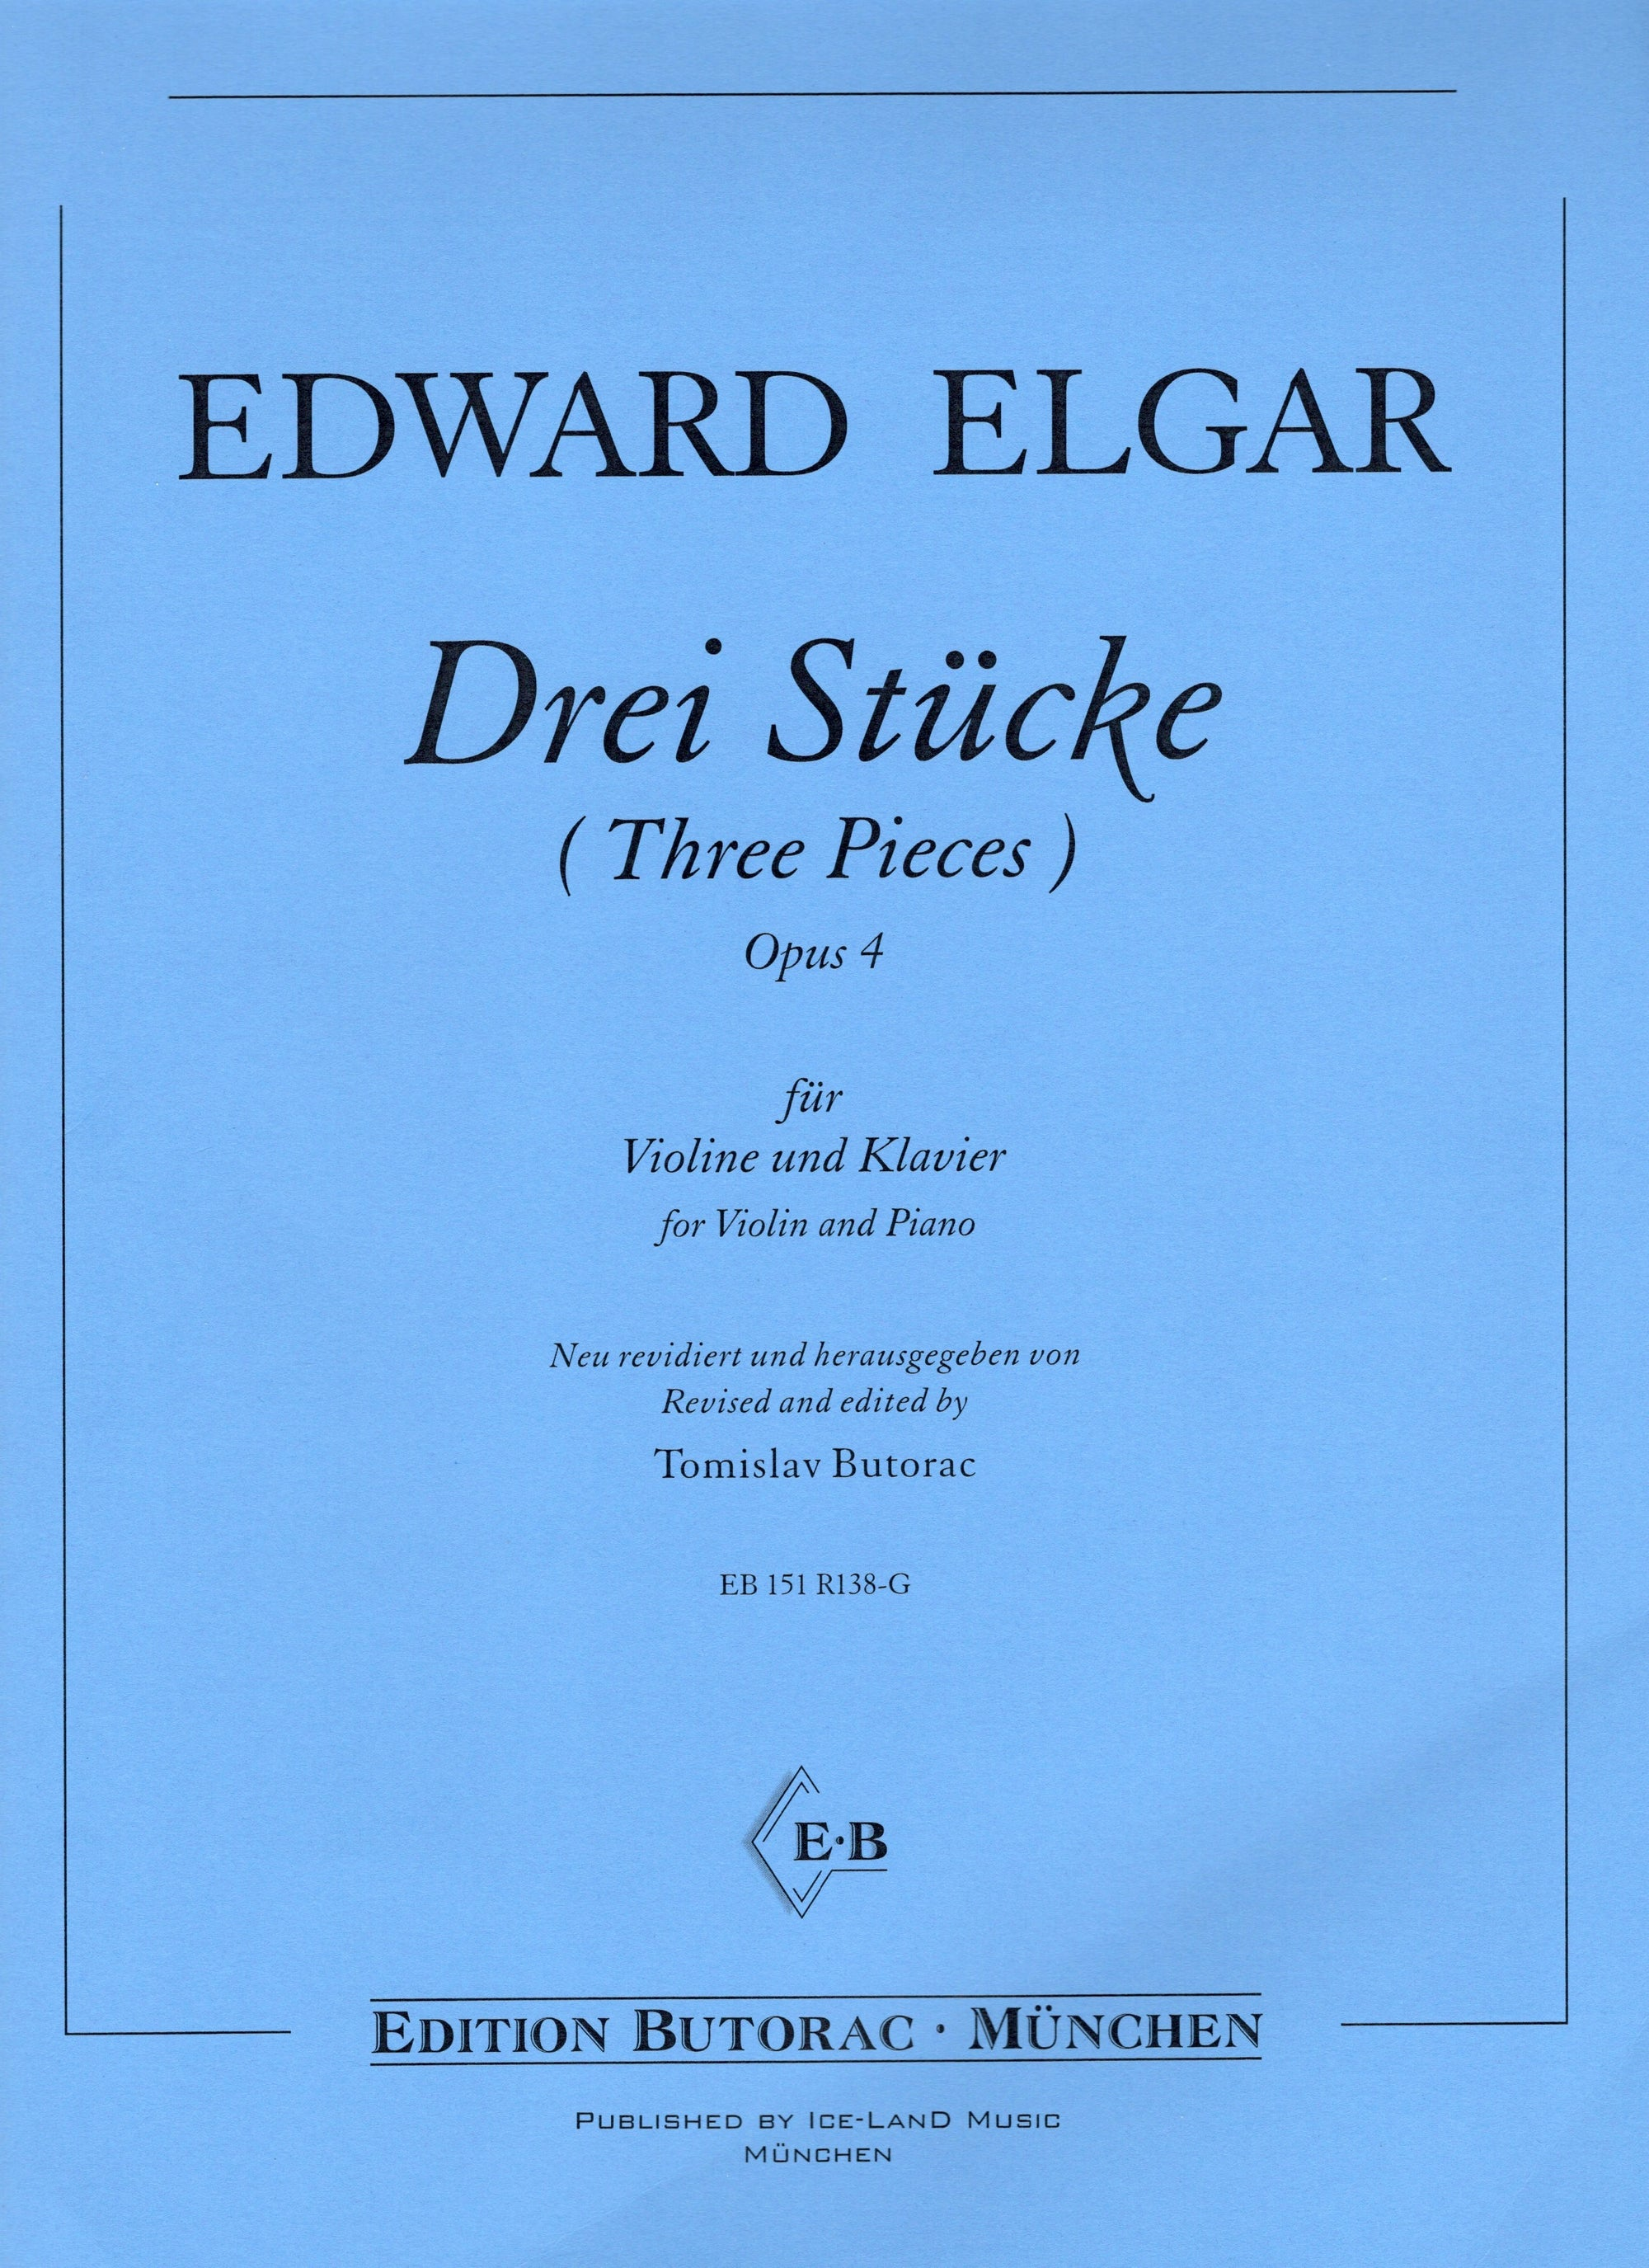 Elgar: Three Pieces, Op. 4